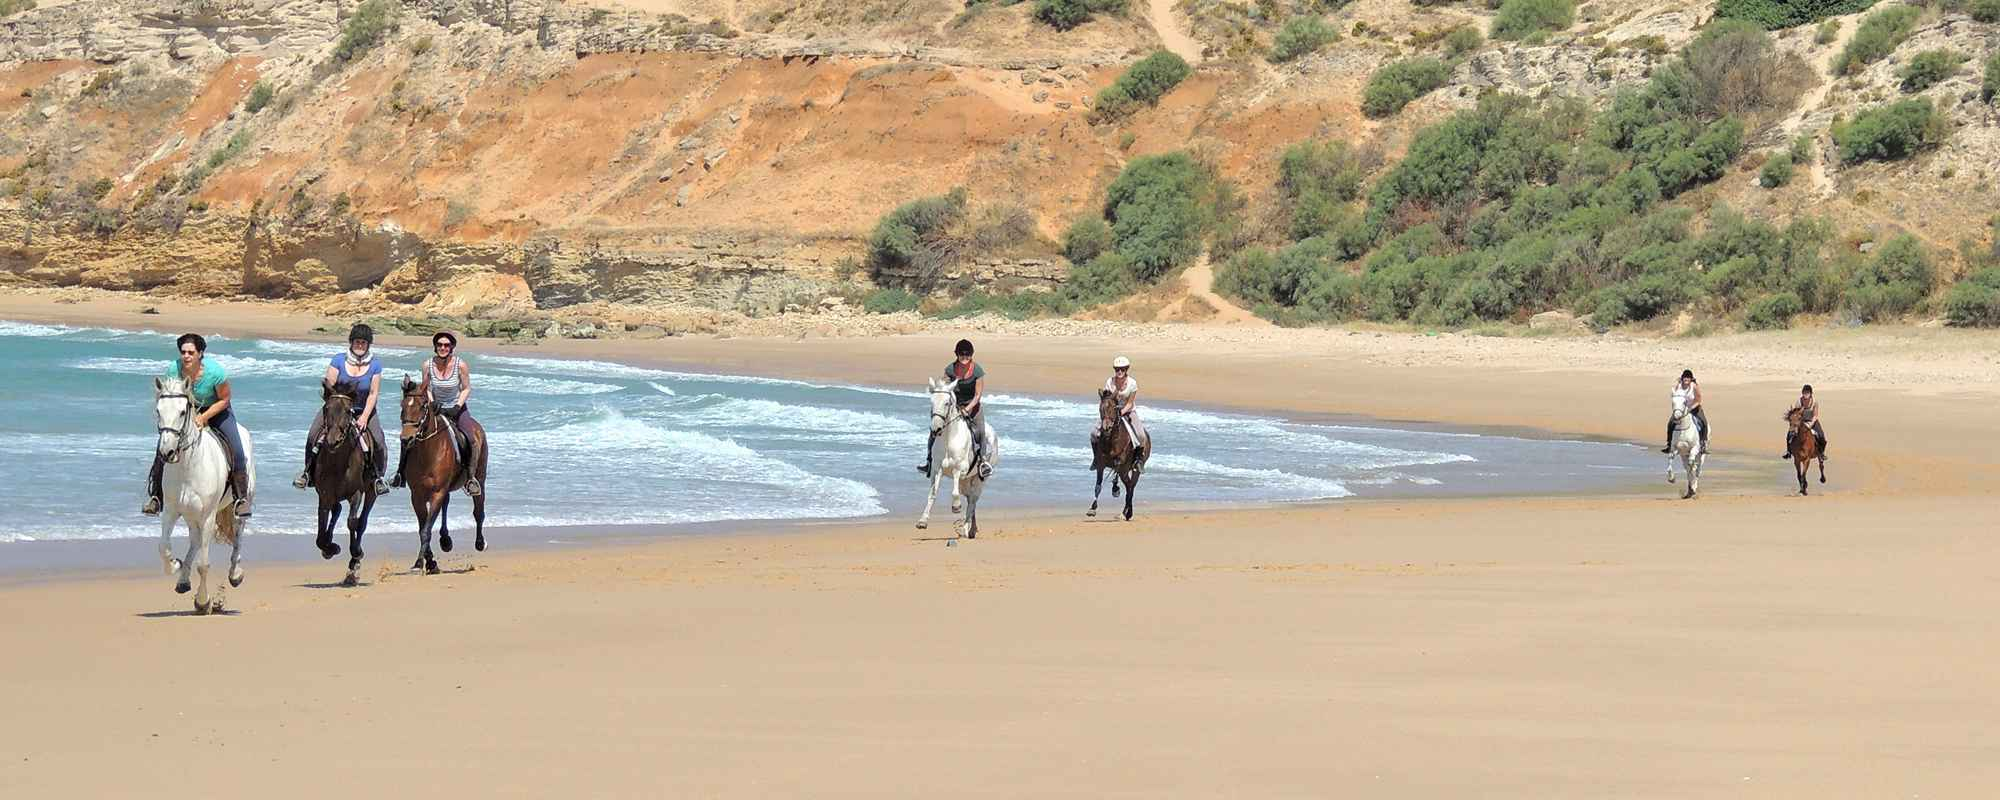 Equestrian holidays in Spain.